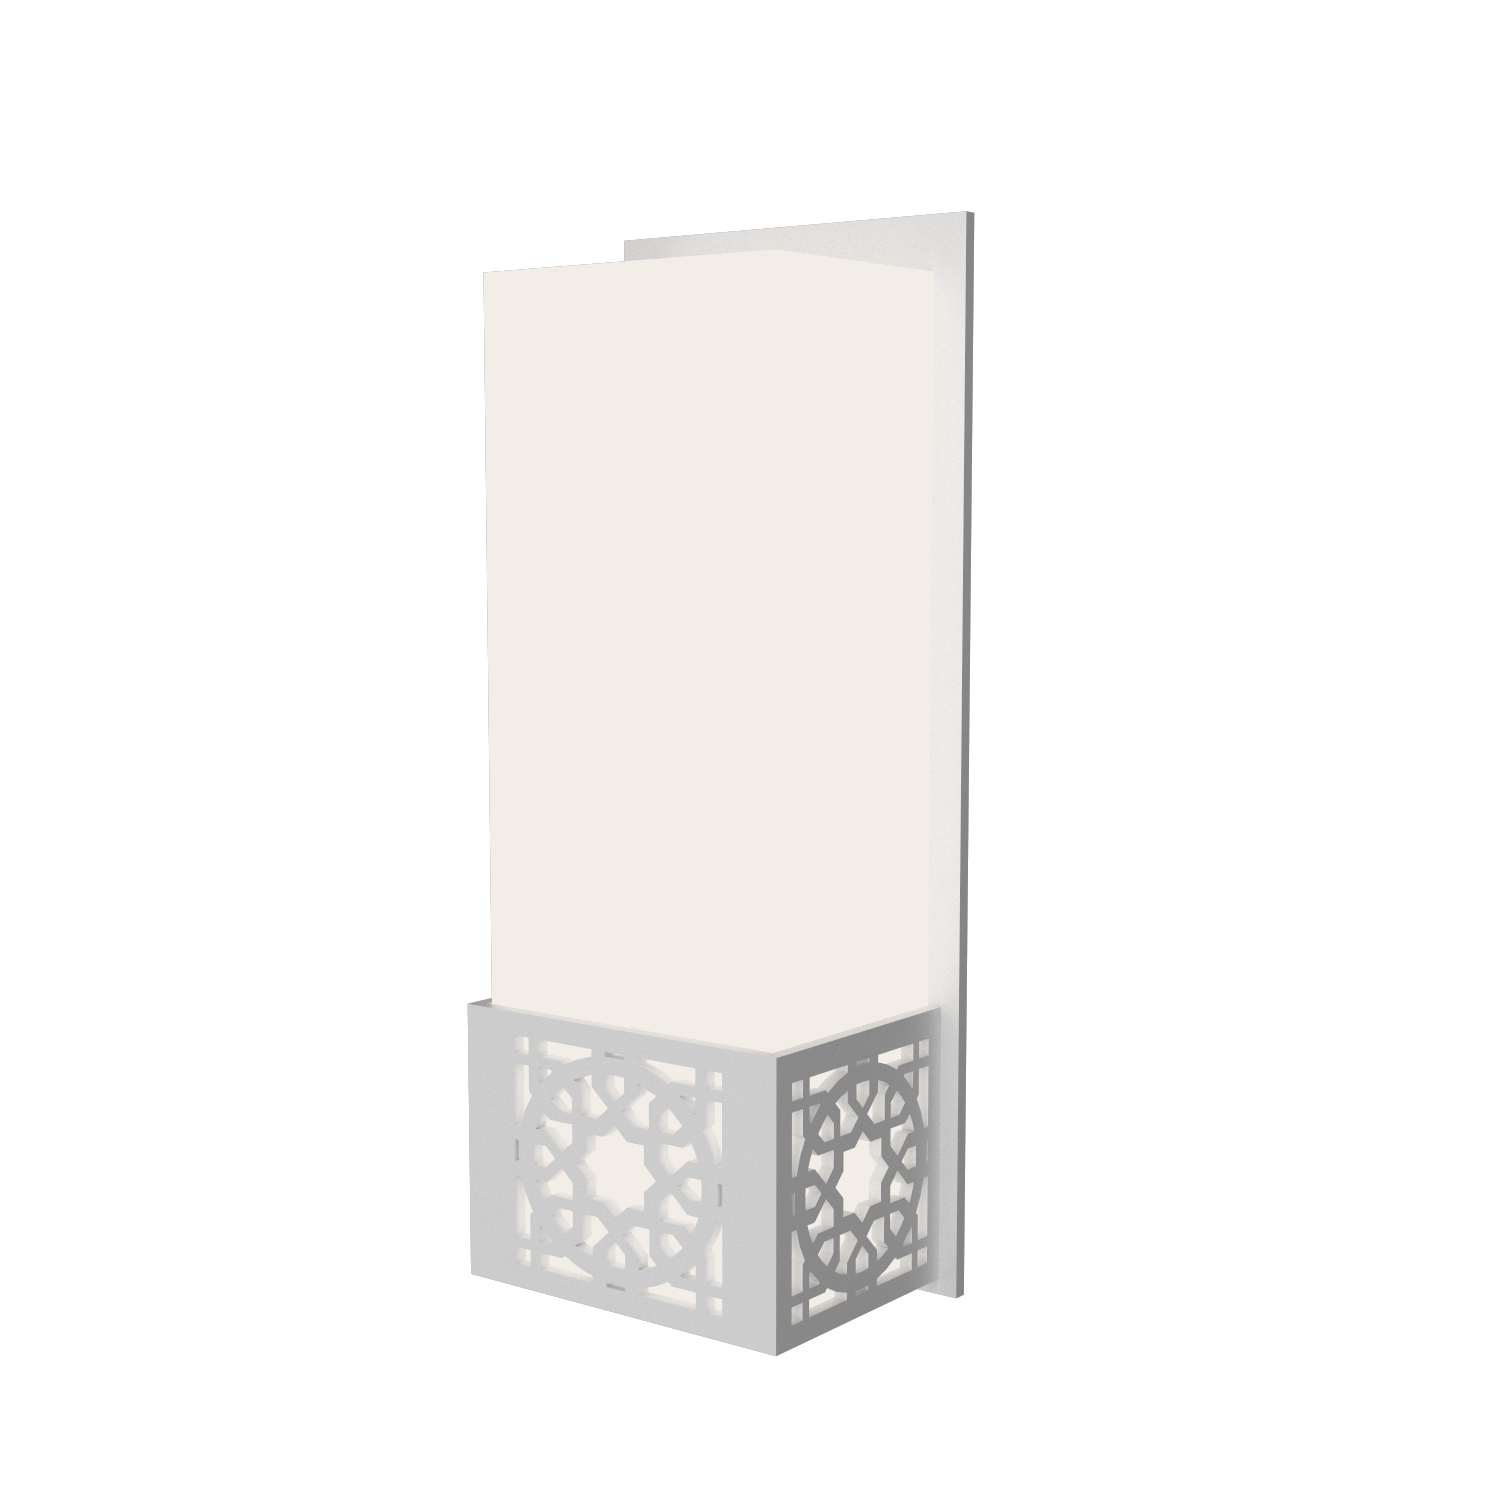 Wall Lamp Accord Patterns 4052 - Patterns Line Accord Lighting | 07. White